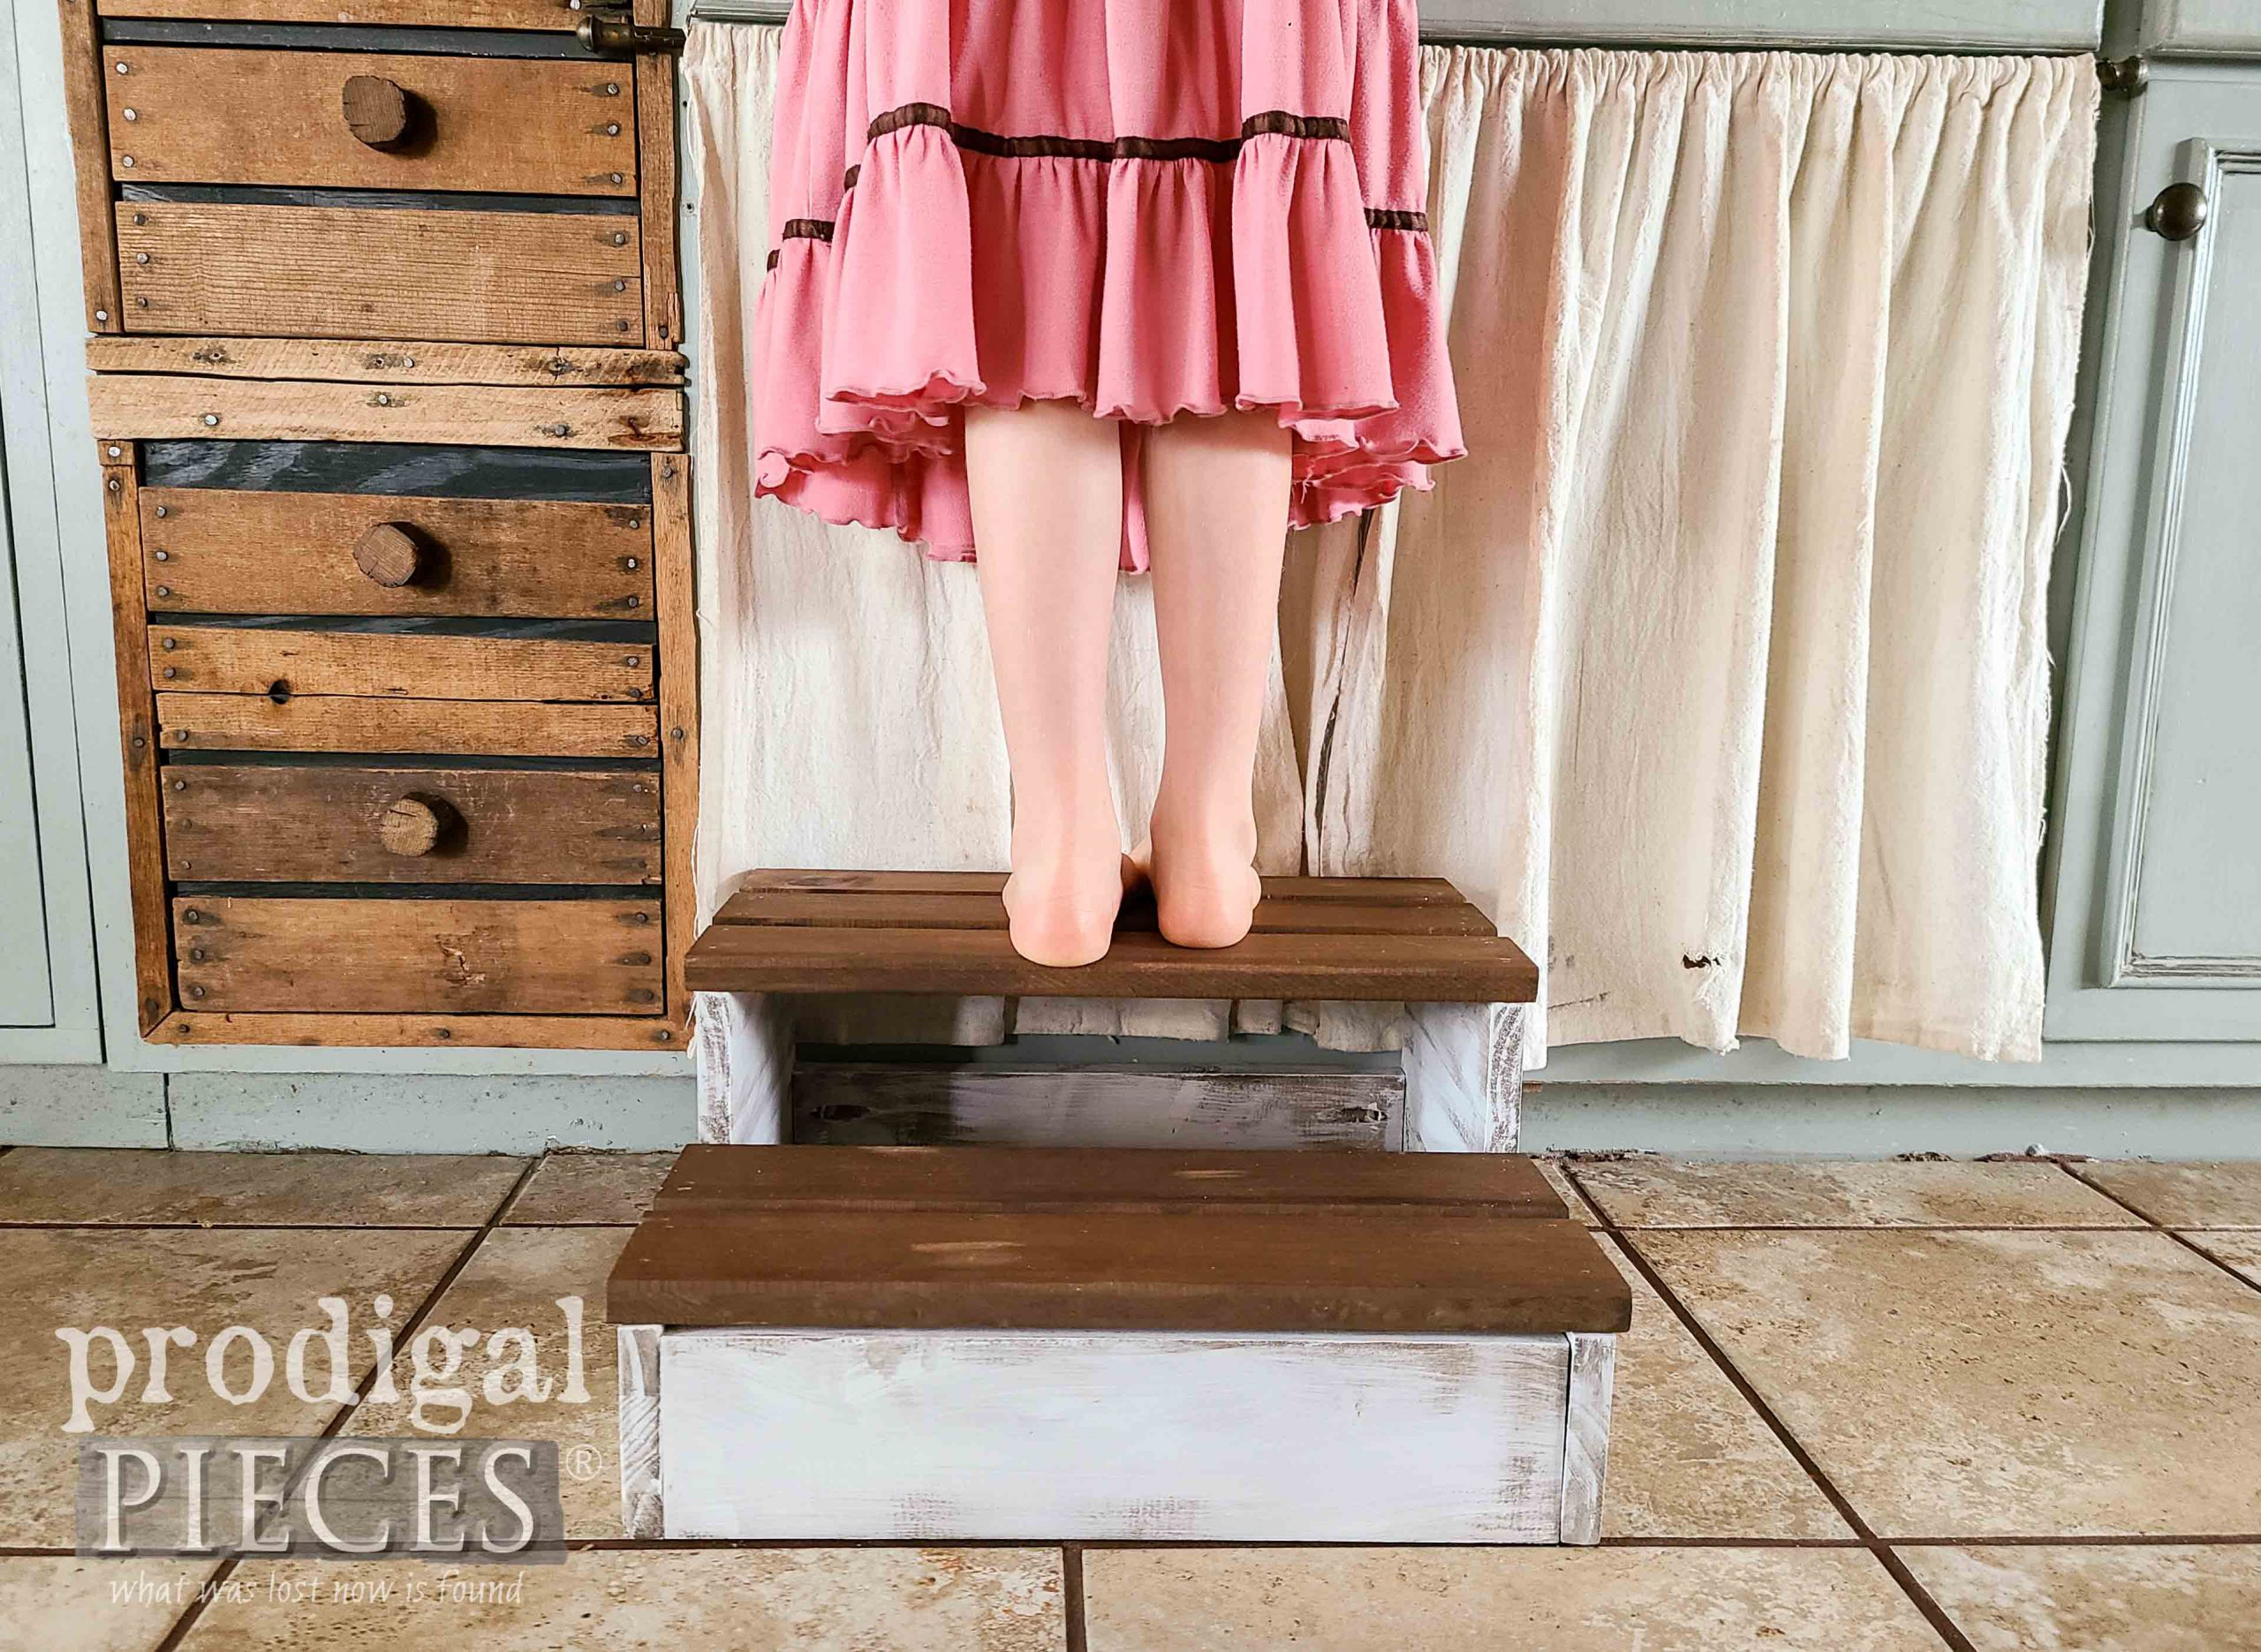 Rustic Wooden Step Stool DIY by Larissa of Prodigal Pieces | prodigalpieces.com #prodigalpieces #diy #home #woodworking #tutorial